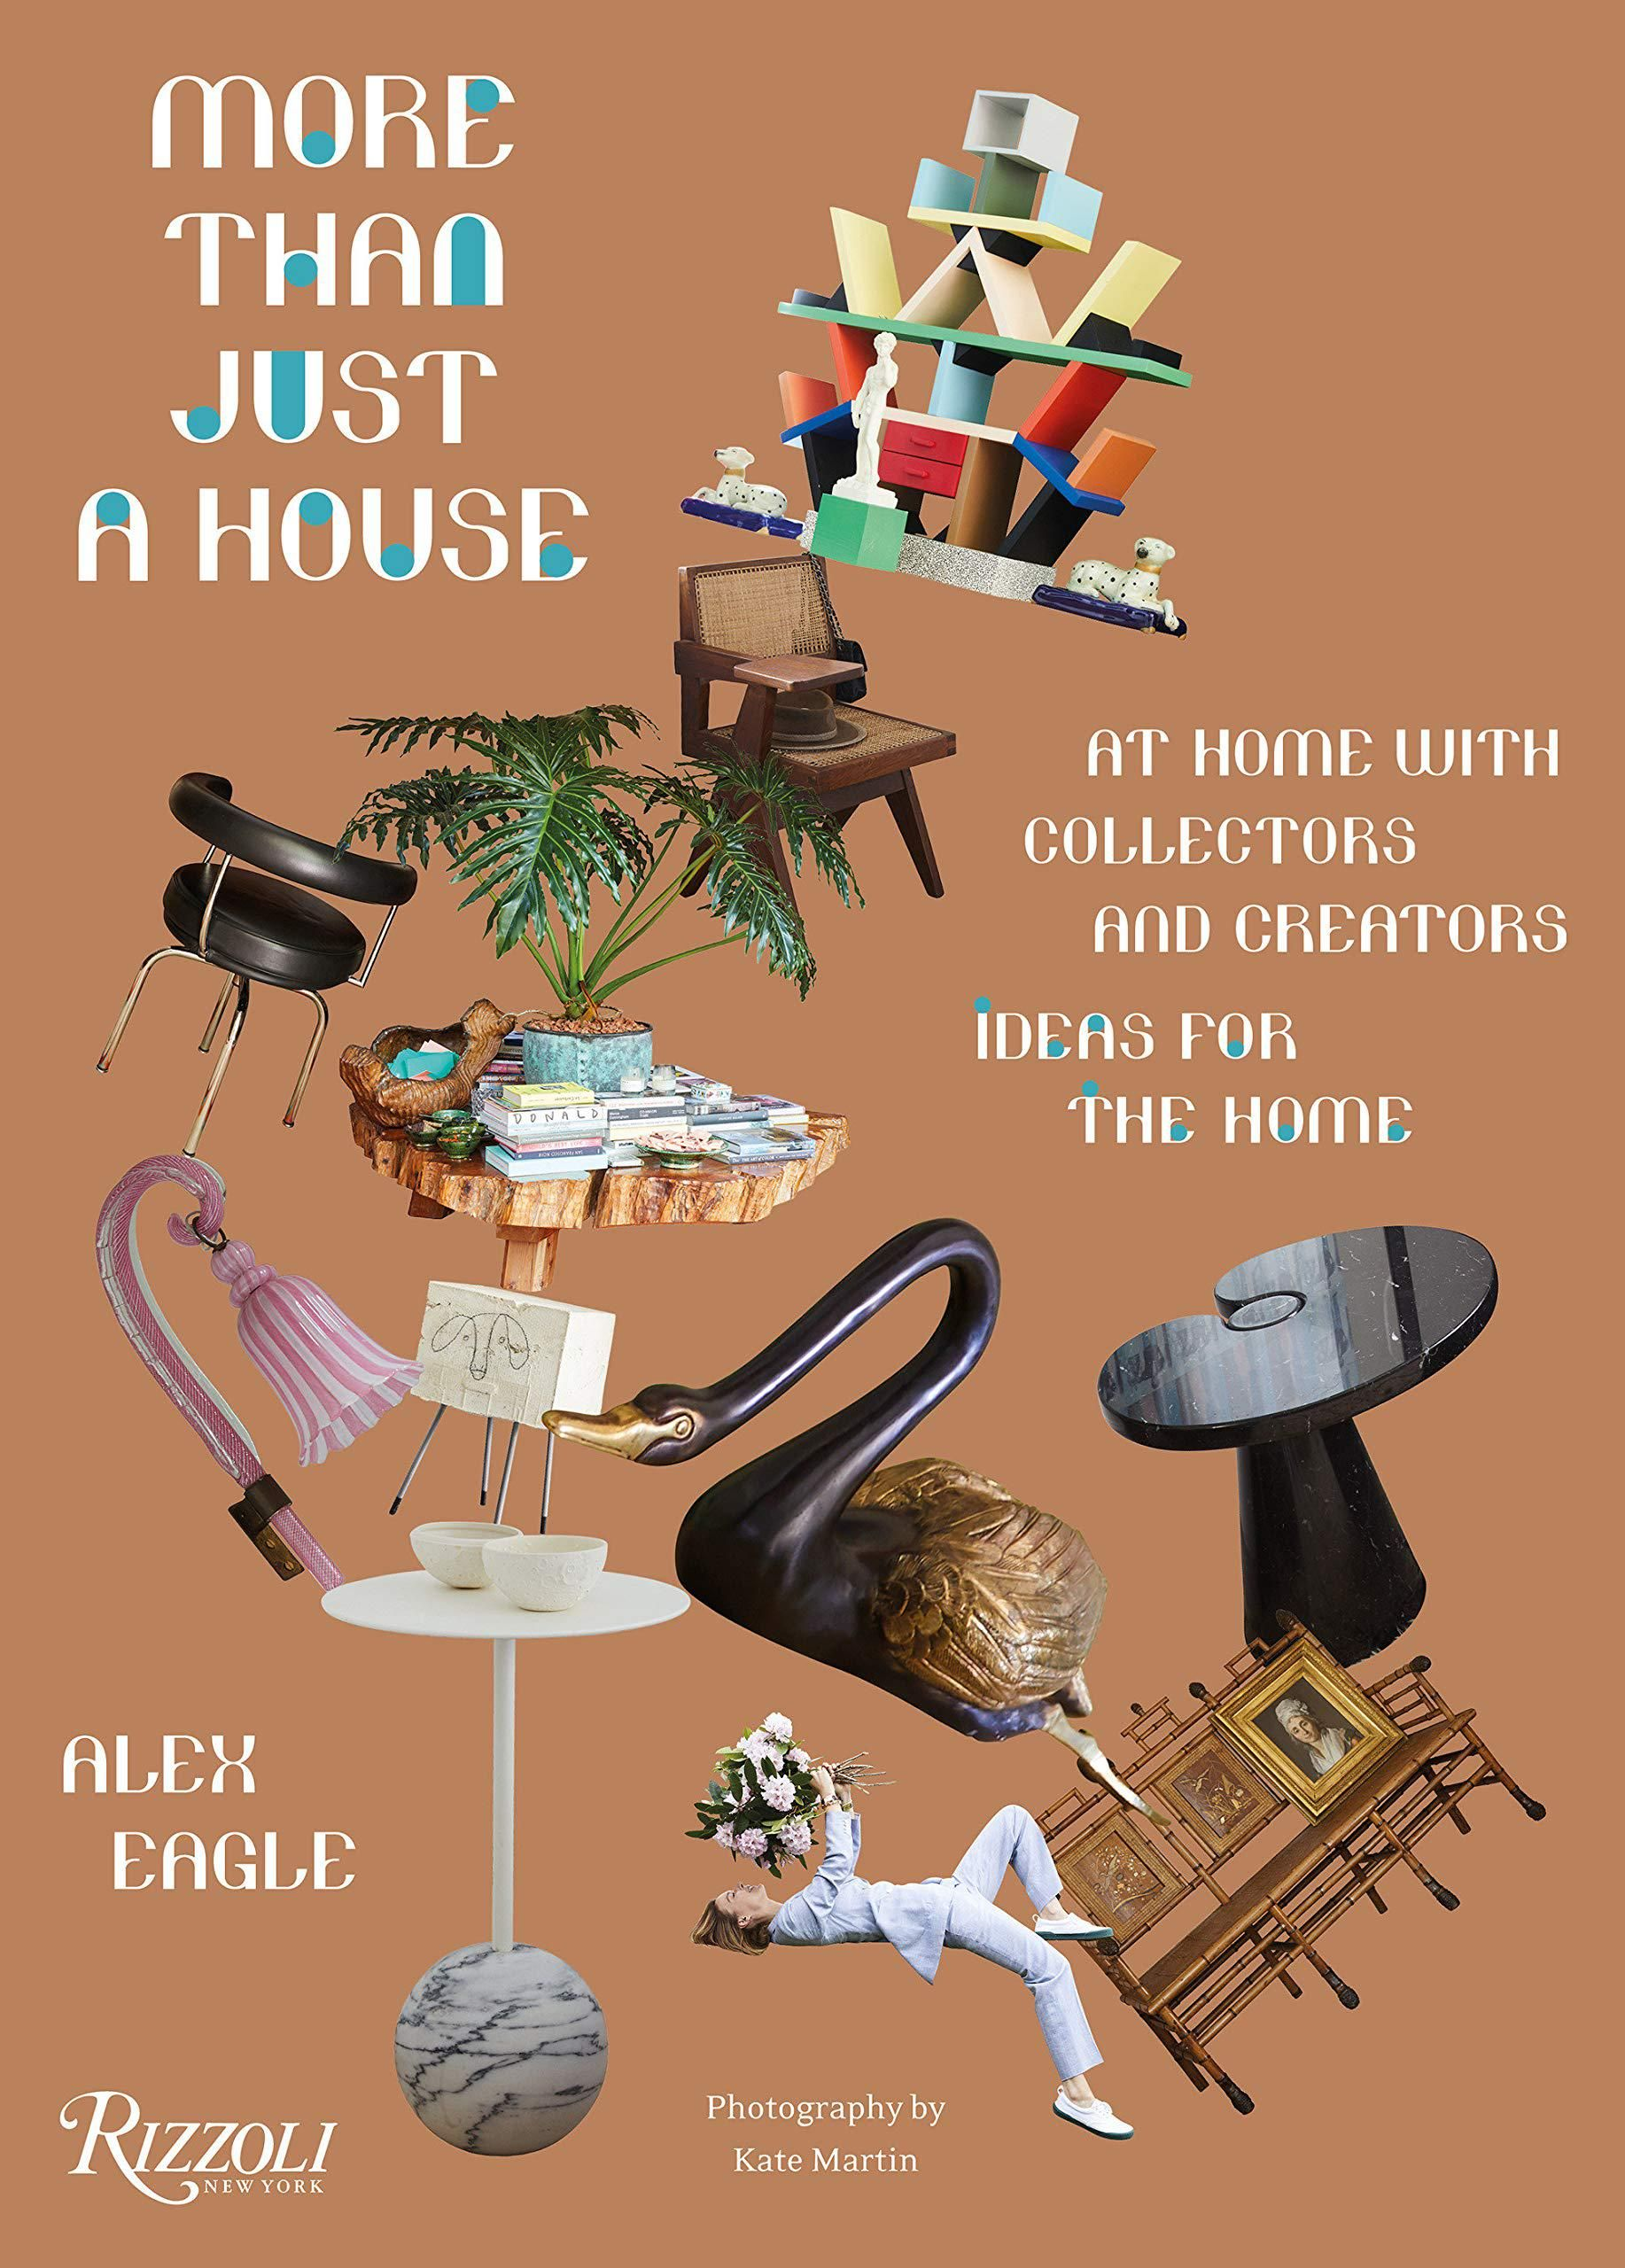 alex eagle more than just a house at home with collectors and creators